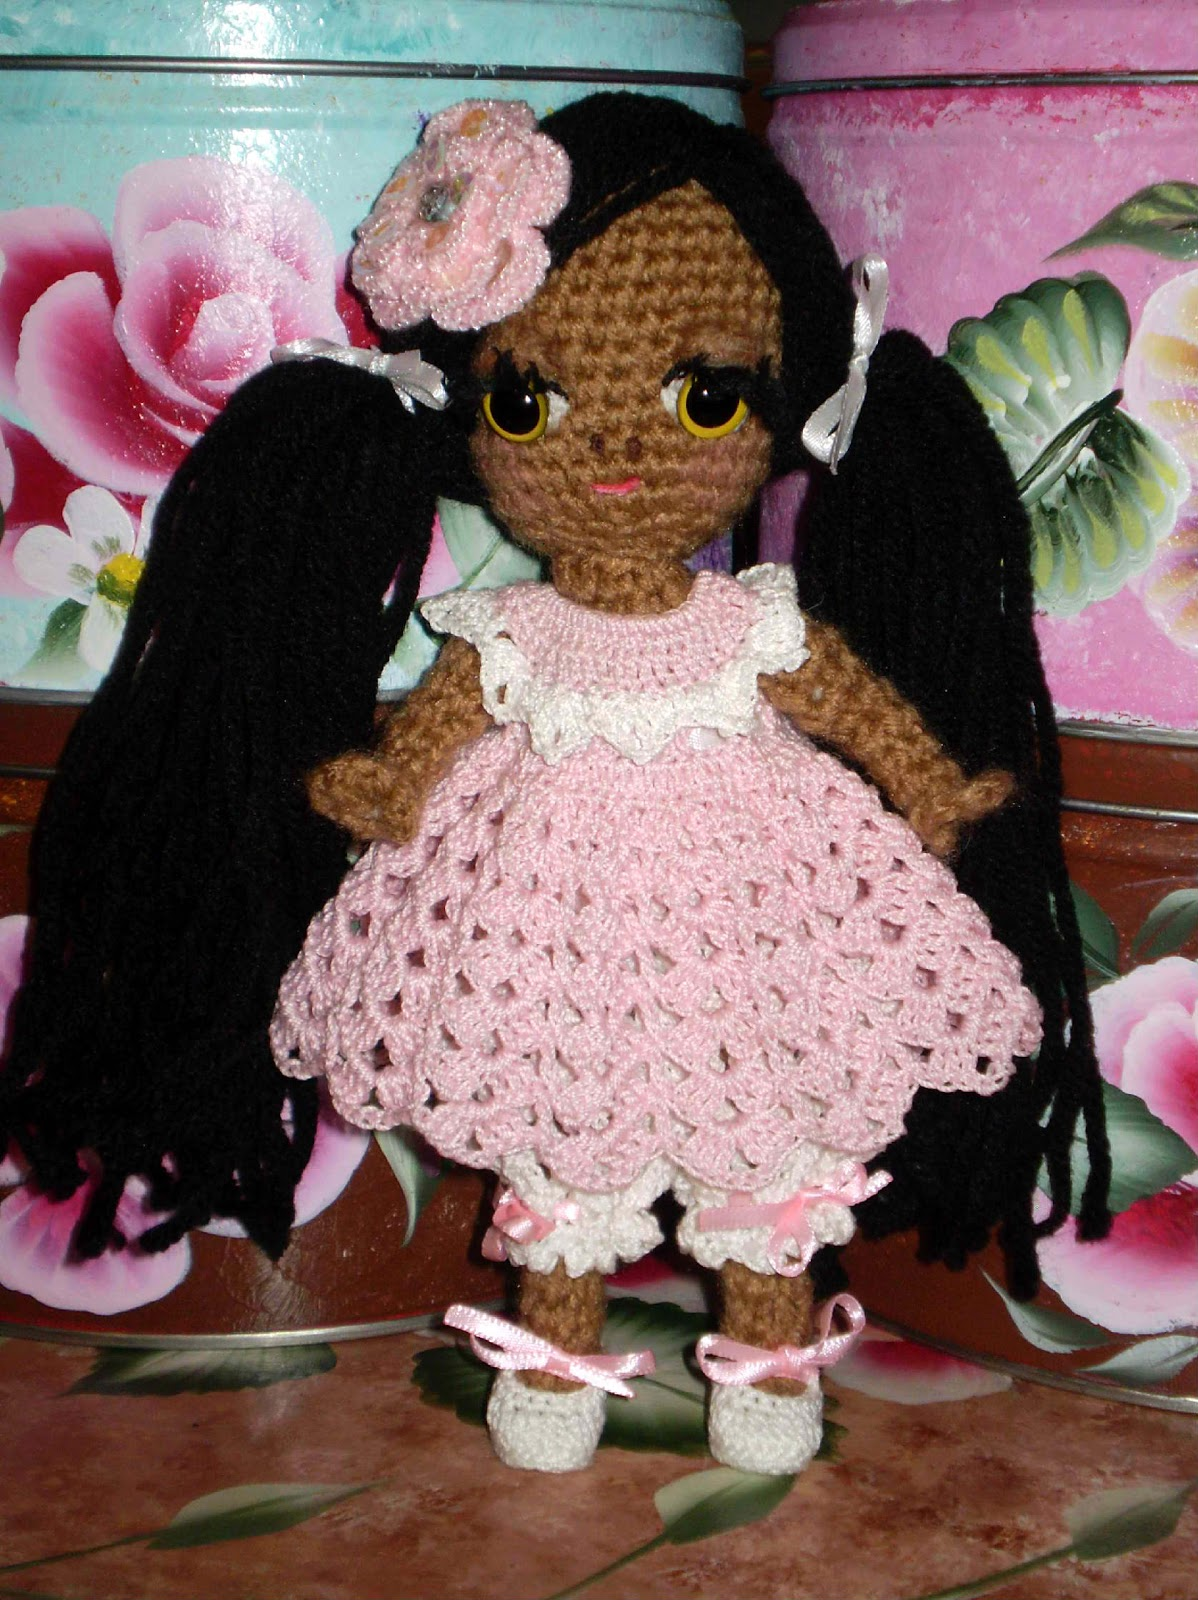 Crochet Doll Miniature Pattern Free Patterns For Crochet